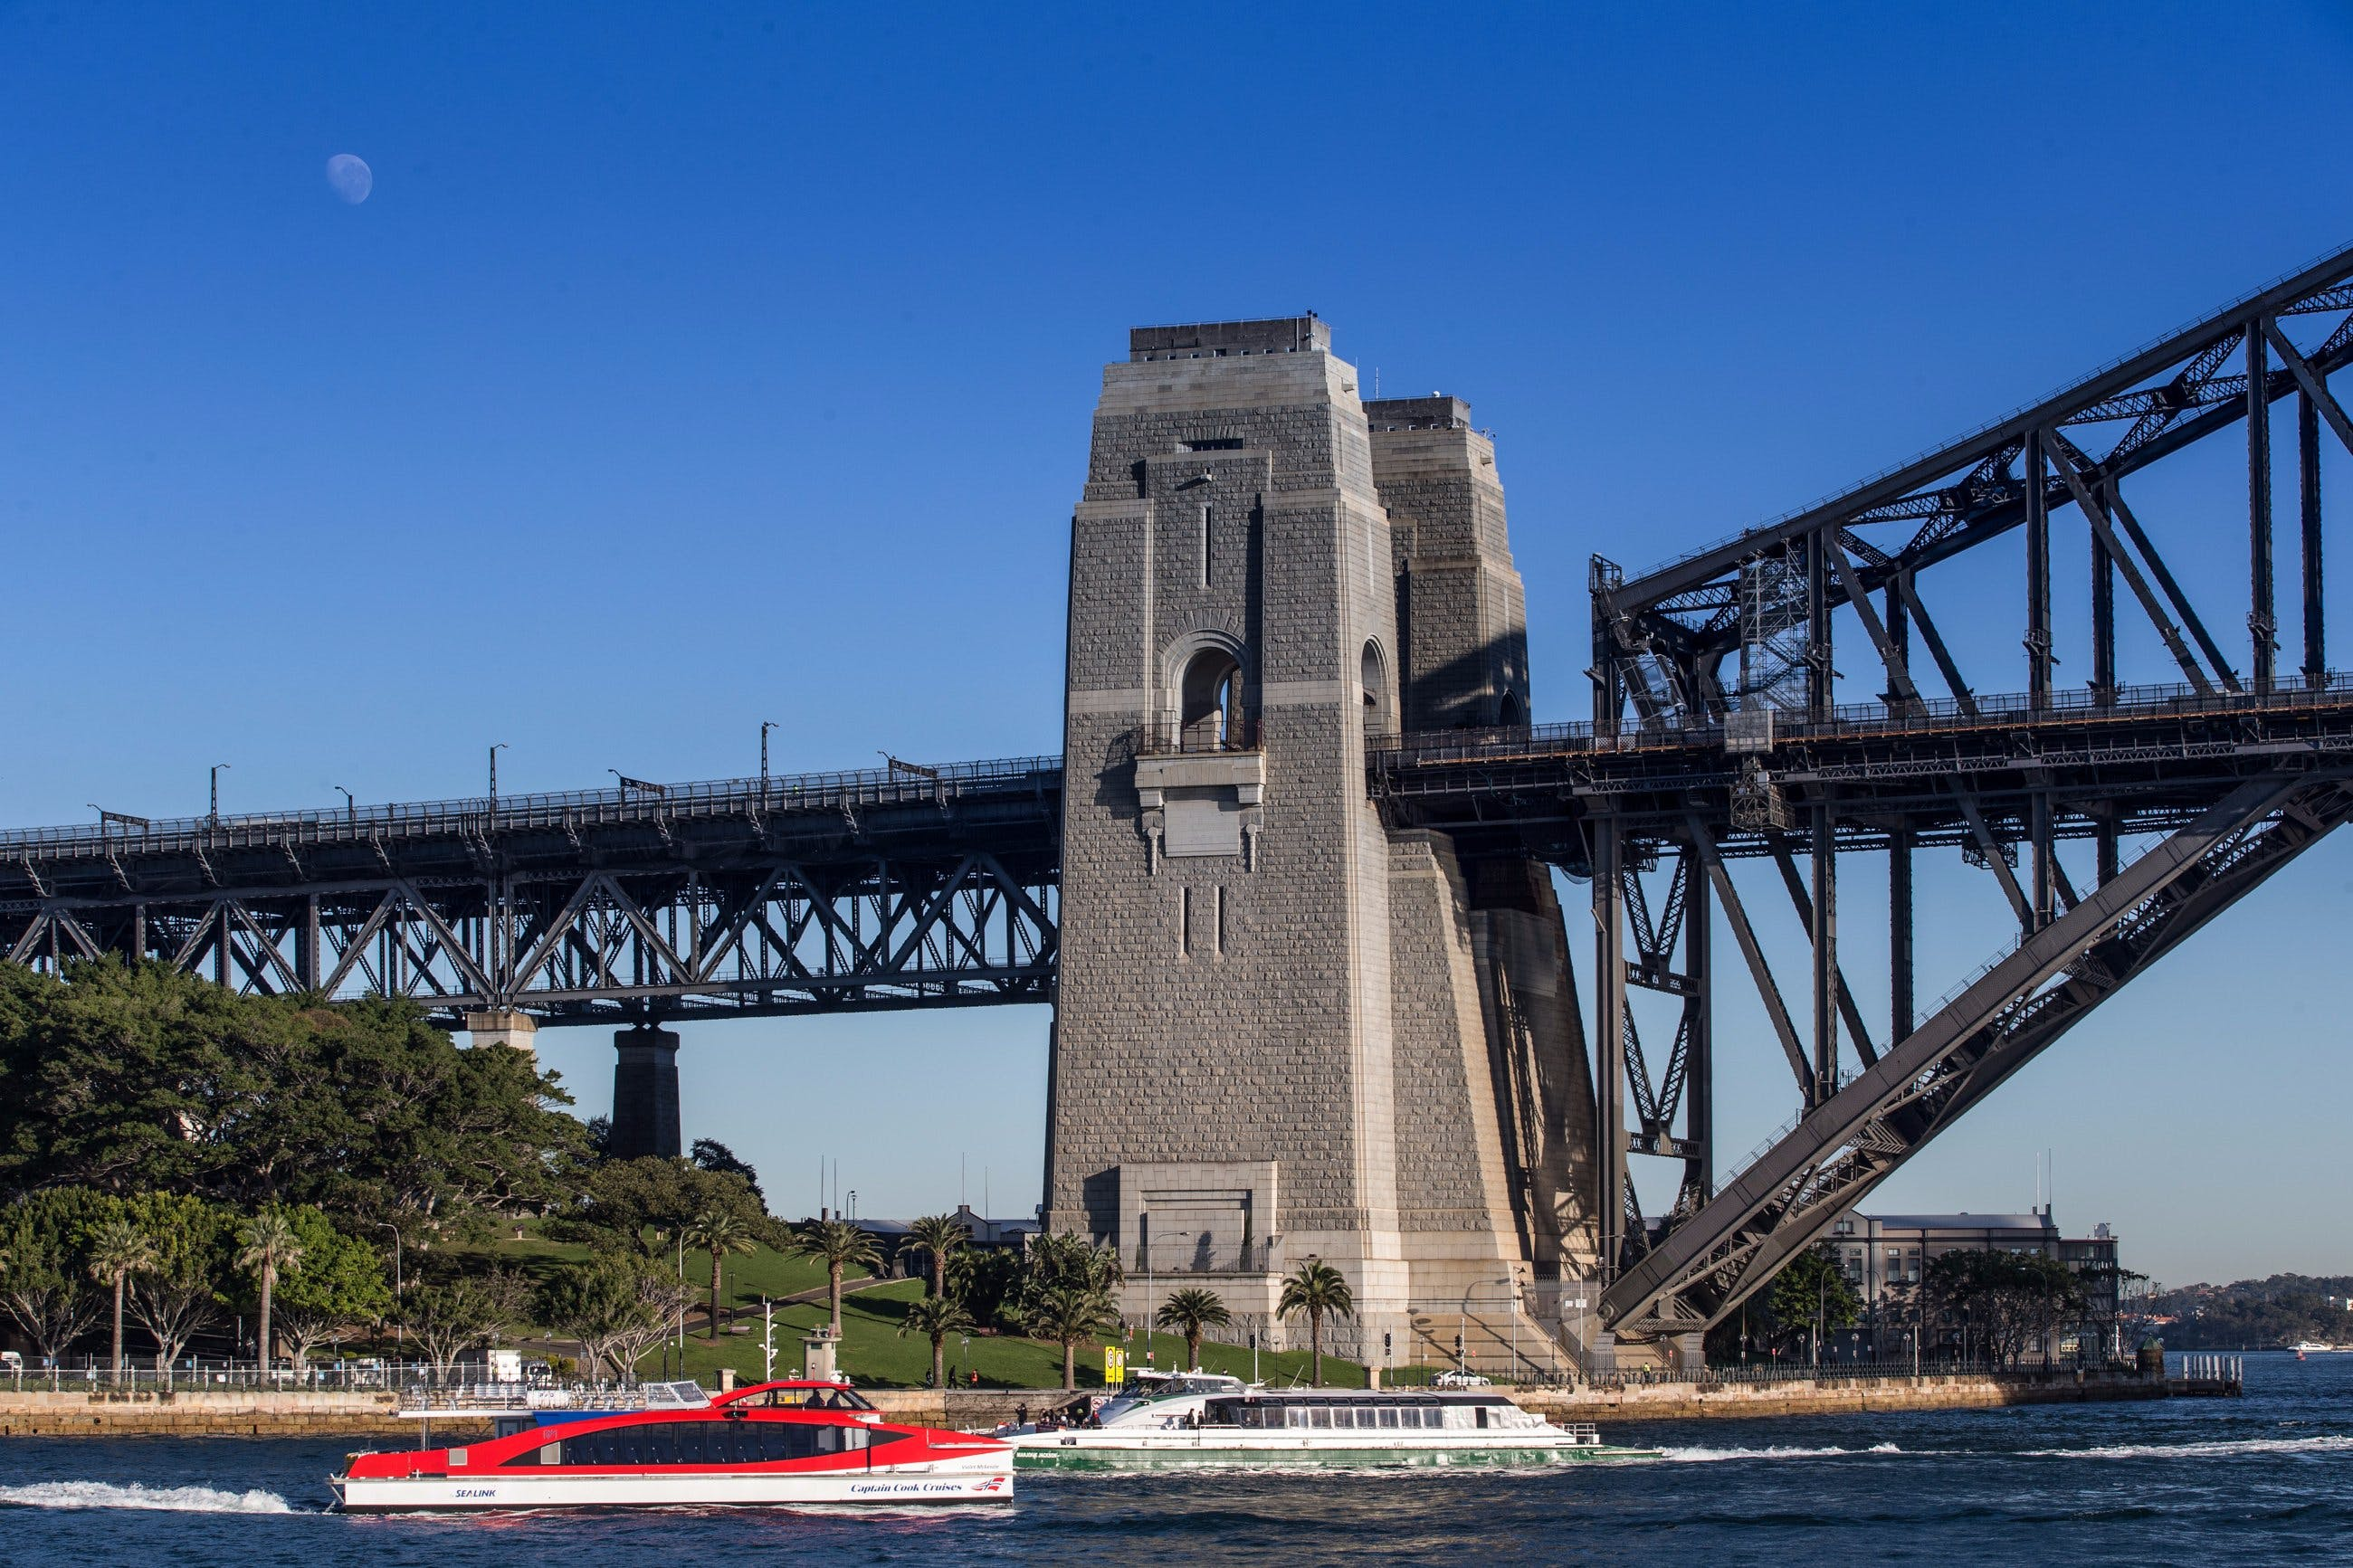 Sydney Harbour Bridge Pylon Lookout - South Australia Travel